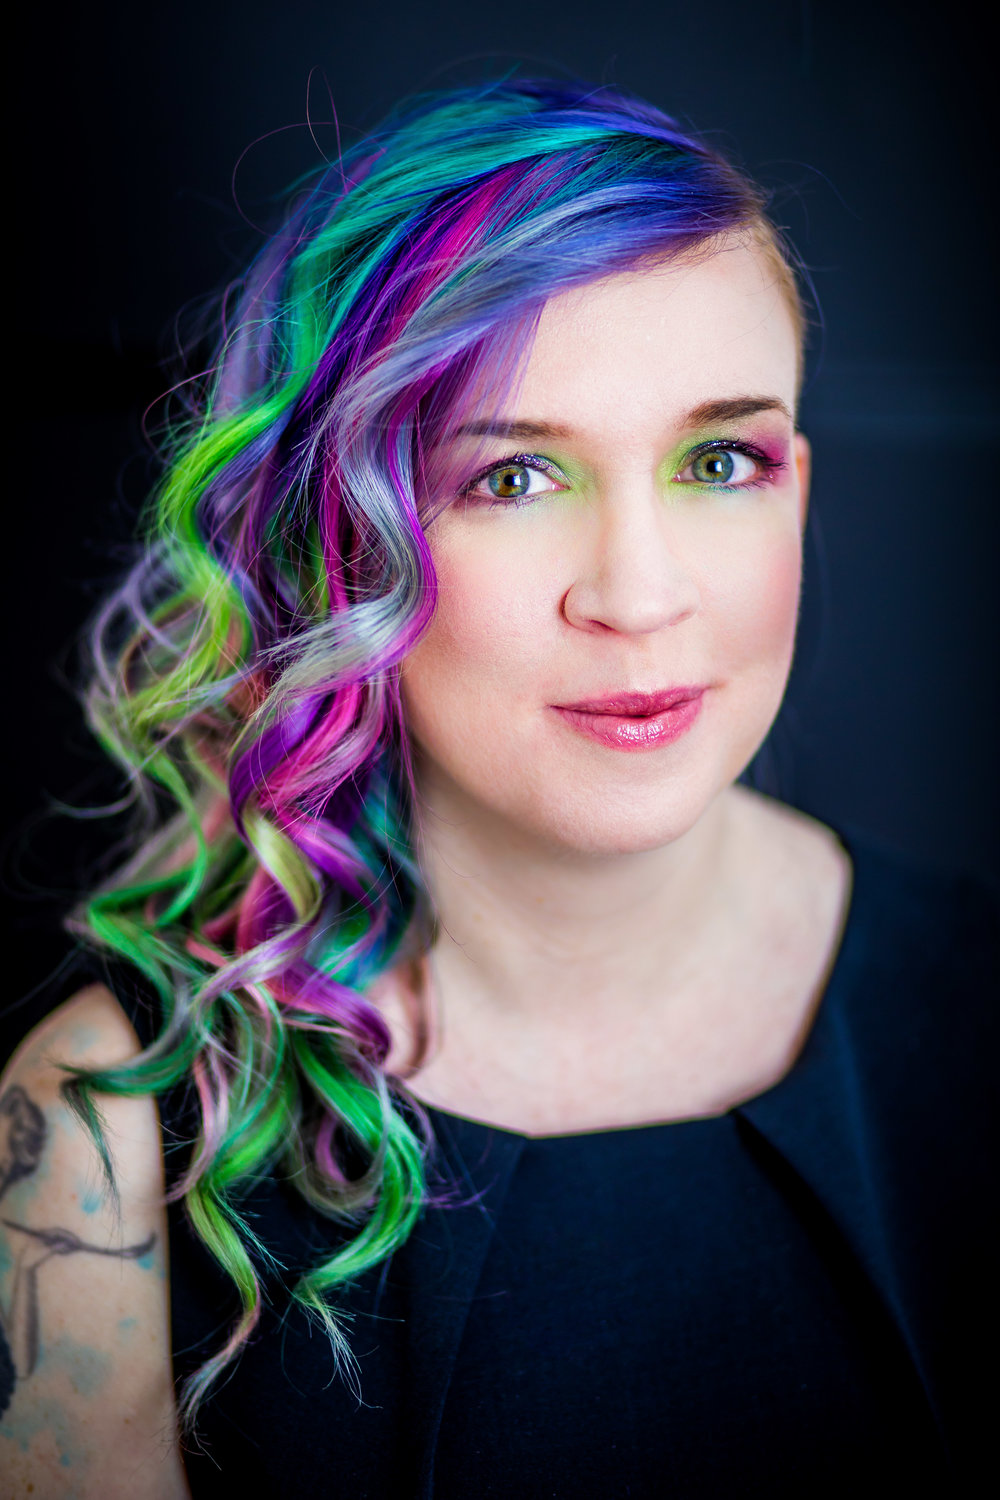 hair.color.art 2018-8048.jpg